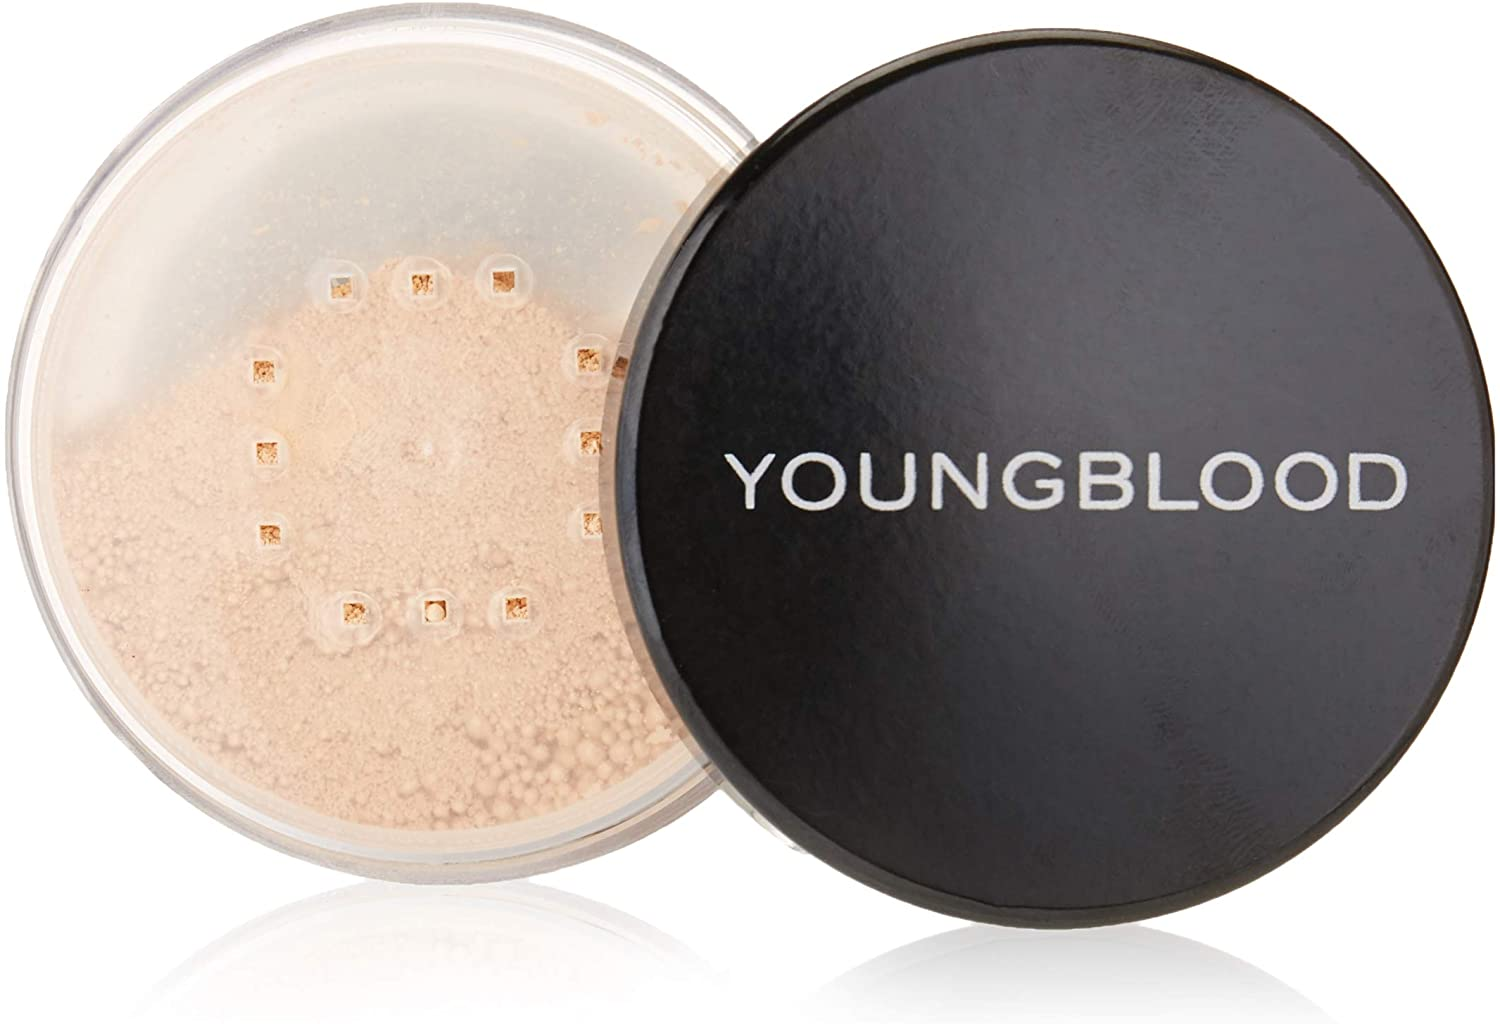 Cool Beige, Youngblood Loose Mineral Foundation